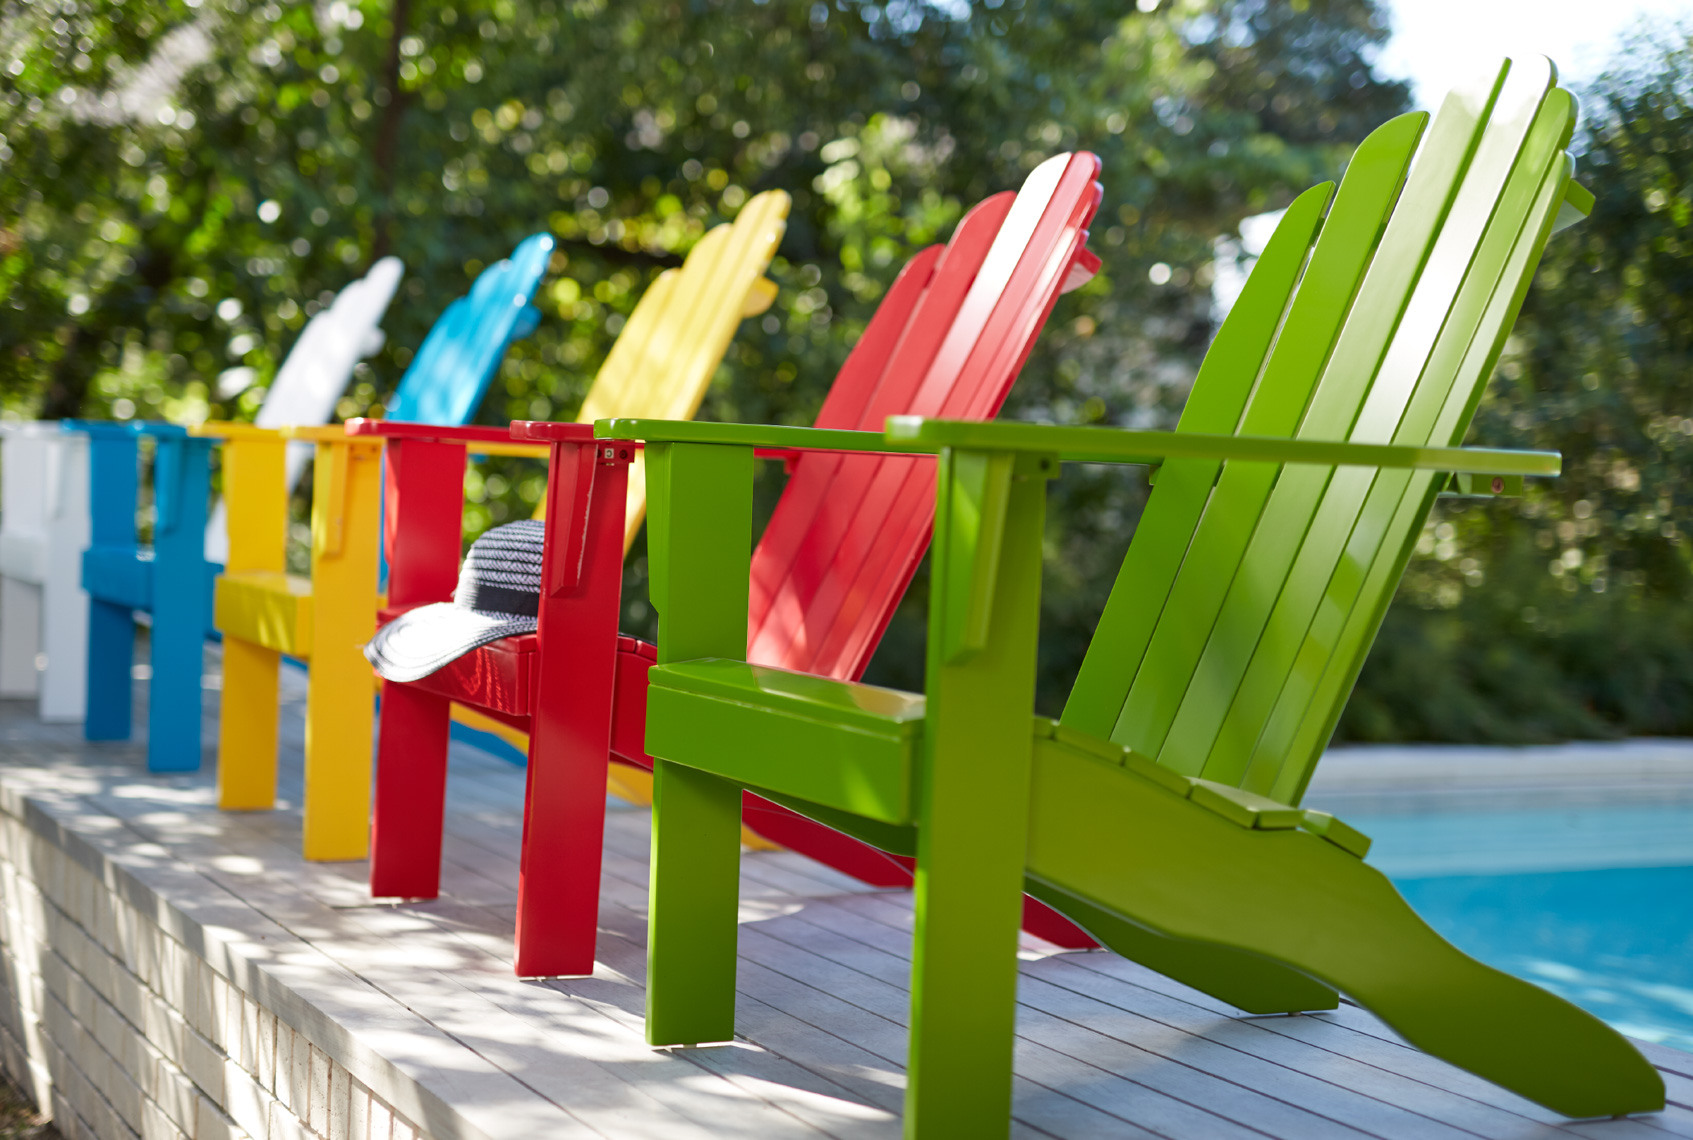 Colorful adirondack chairs in a row near pool